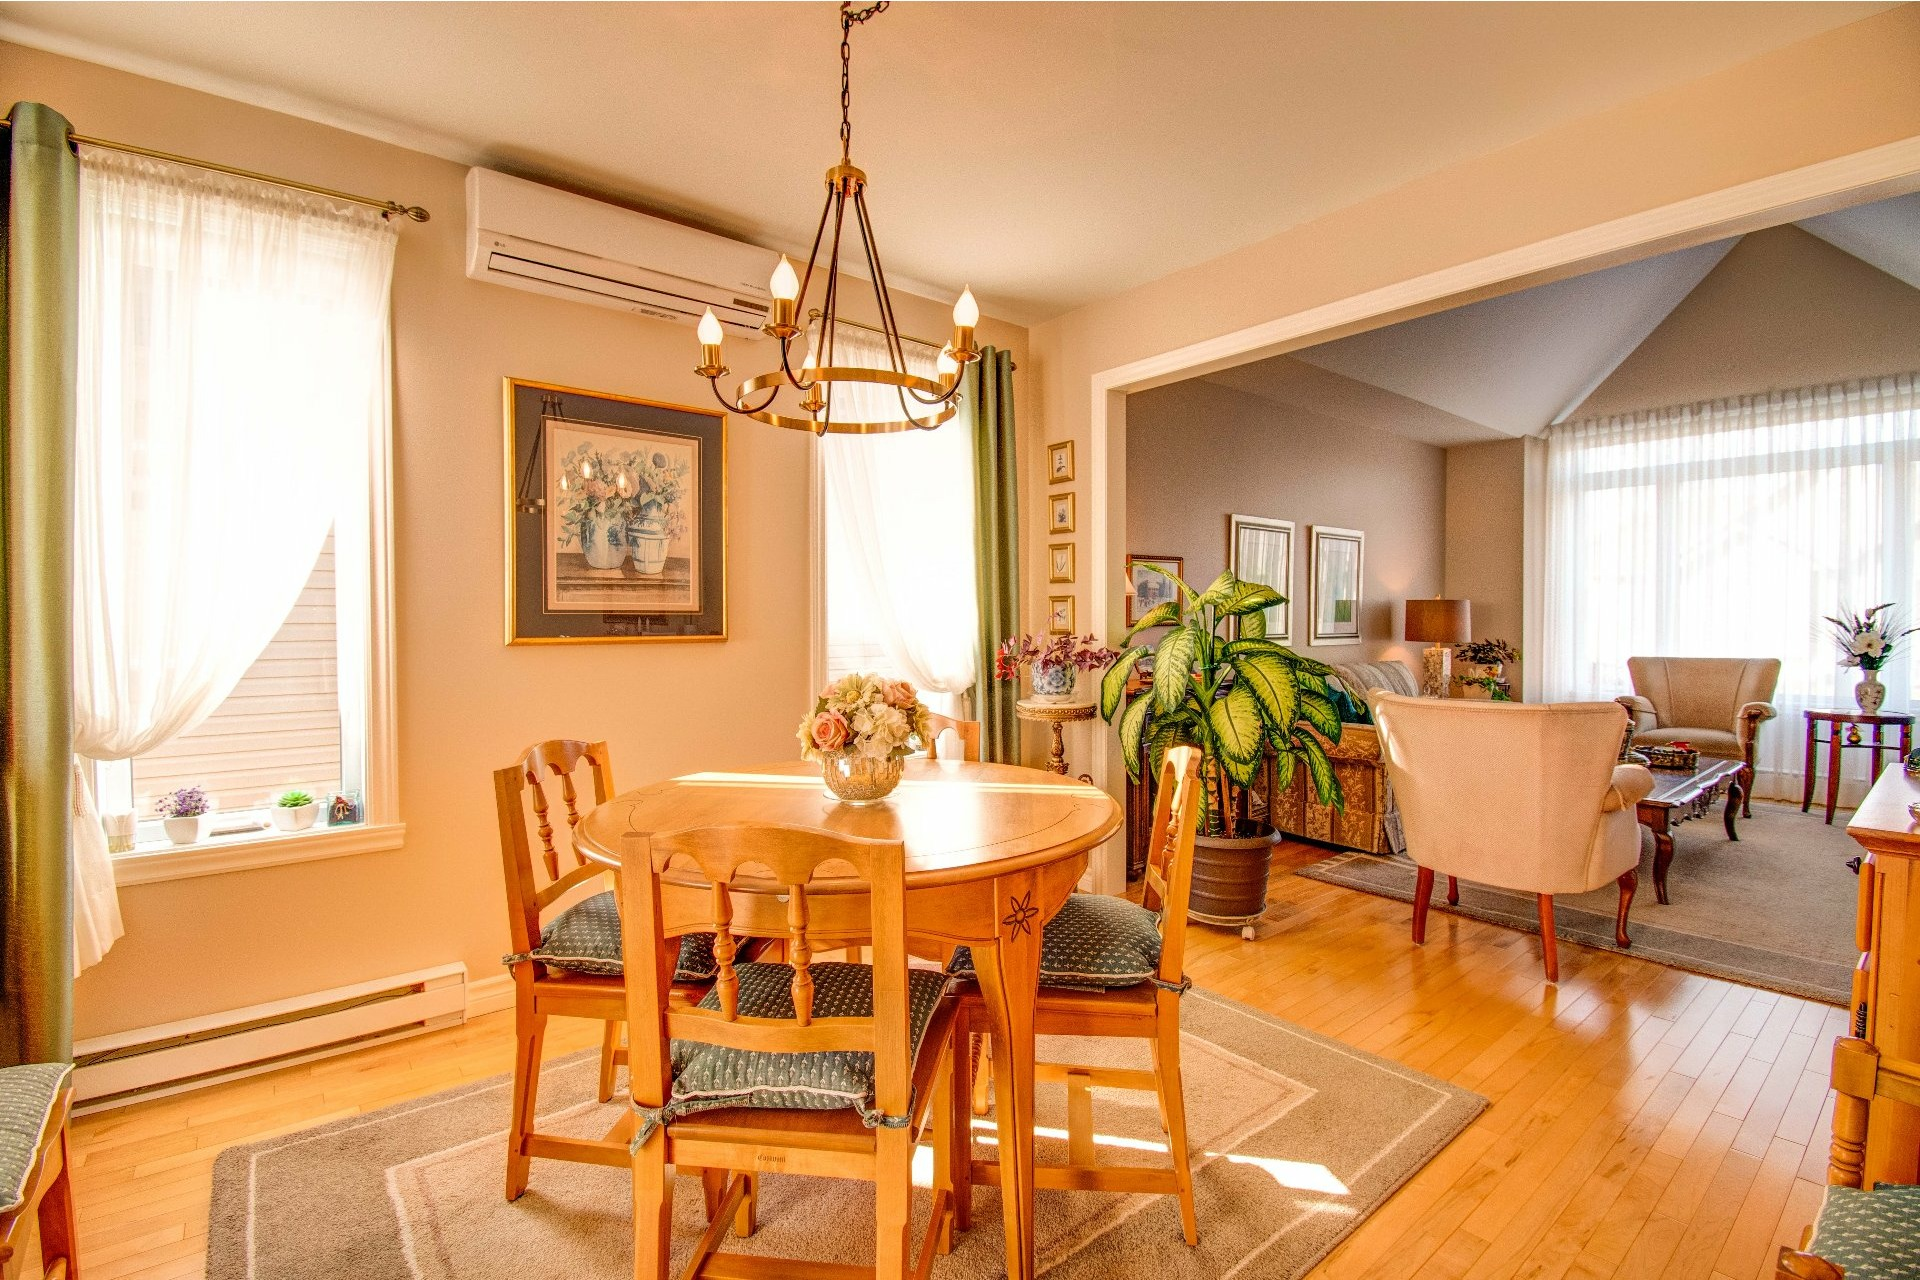 image 4 - House For sale Trois-Rivières - 13 rooms